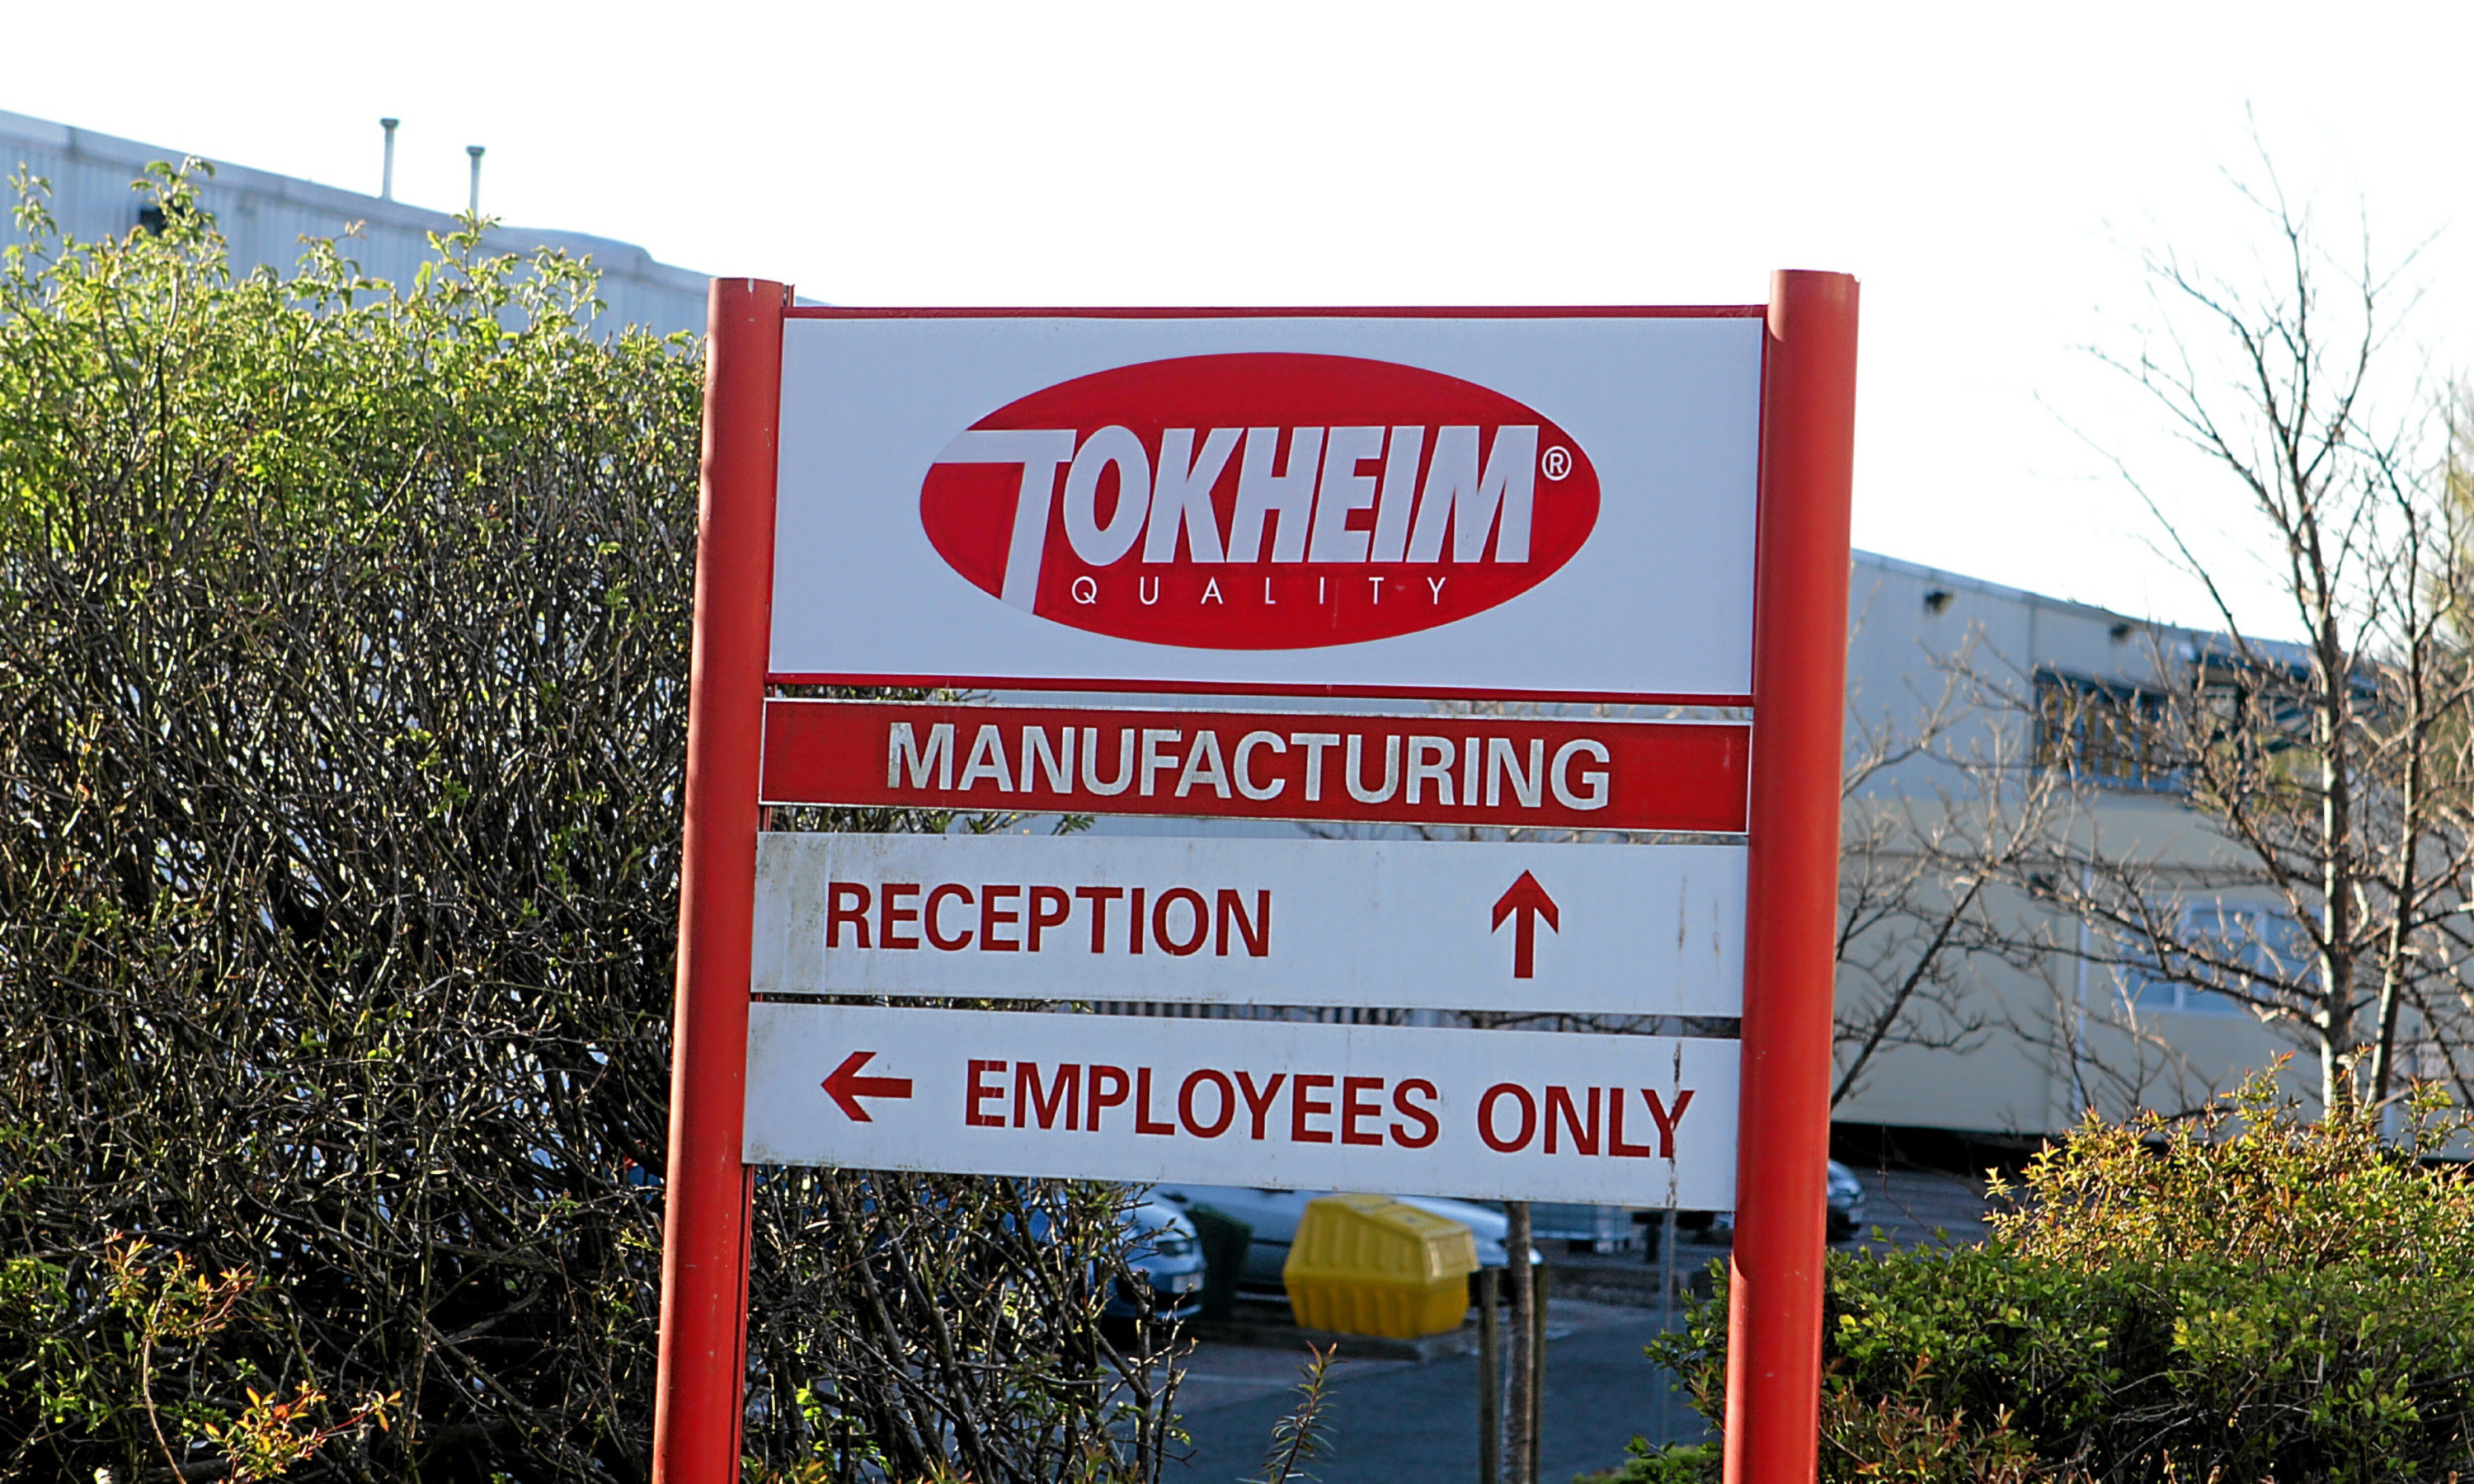 Tokheim's manufacturing plant at West Pitkerro Industrial Estate in Dundee